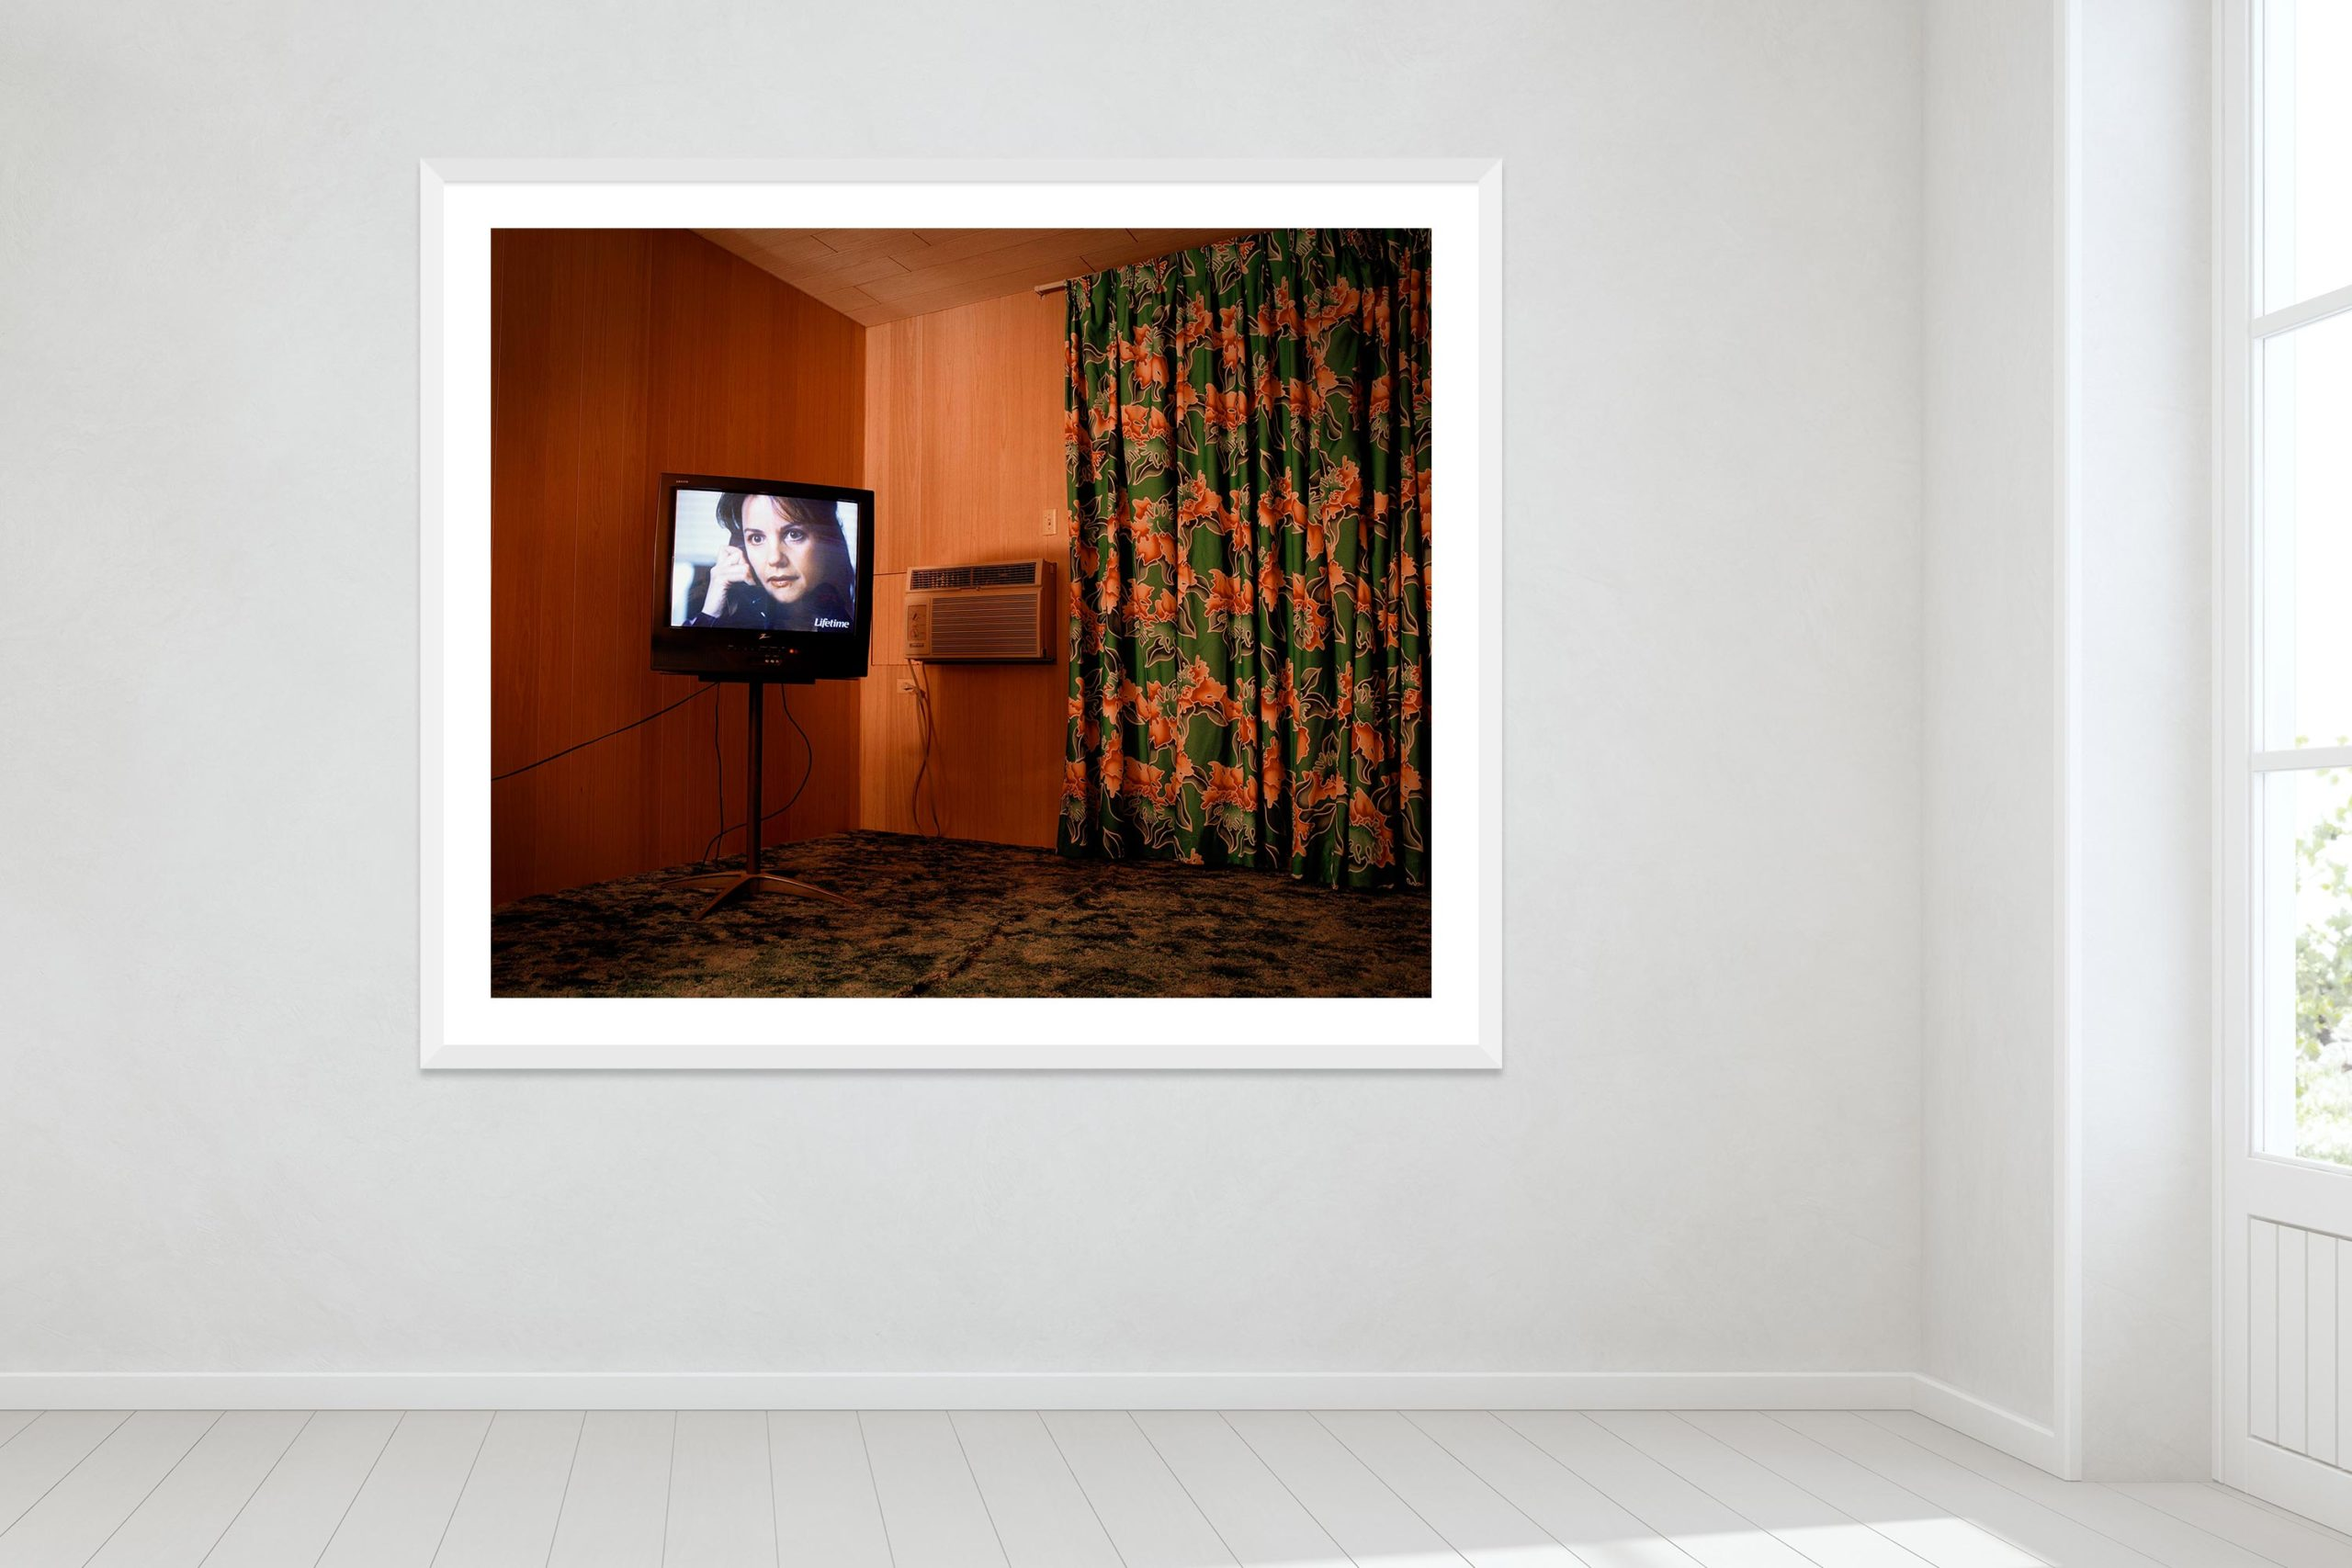 Vacancy - White Frame - Oh Mojave Collection - Fine Art Photography by Toby Dixon